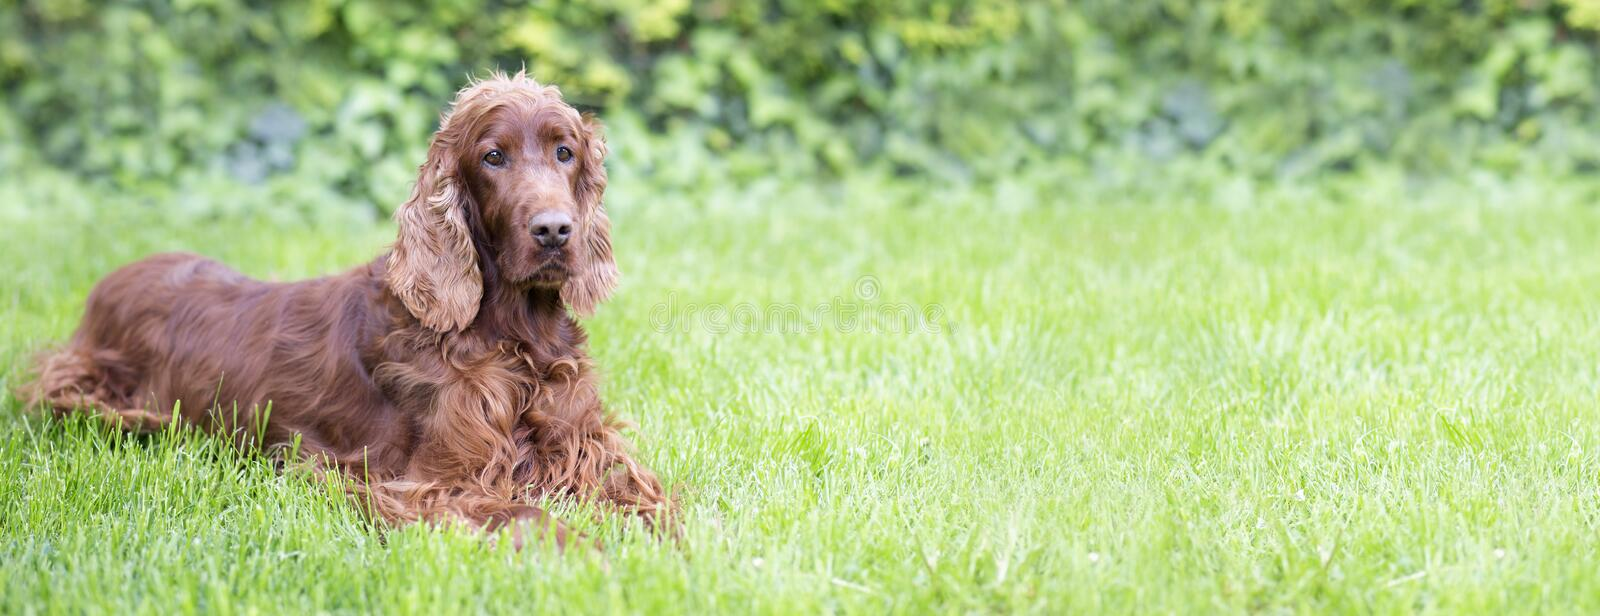 Cute dog looking in the grass royalty free stock images